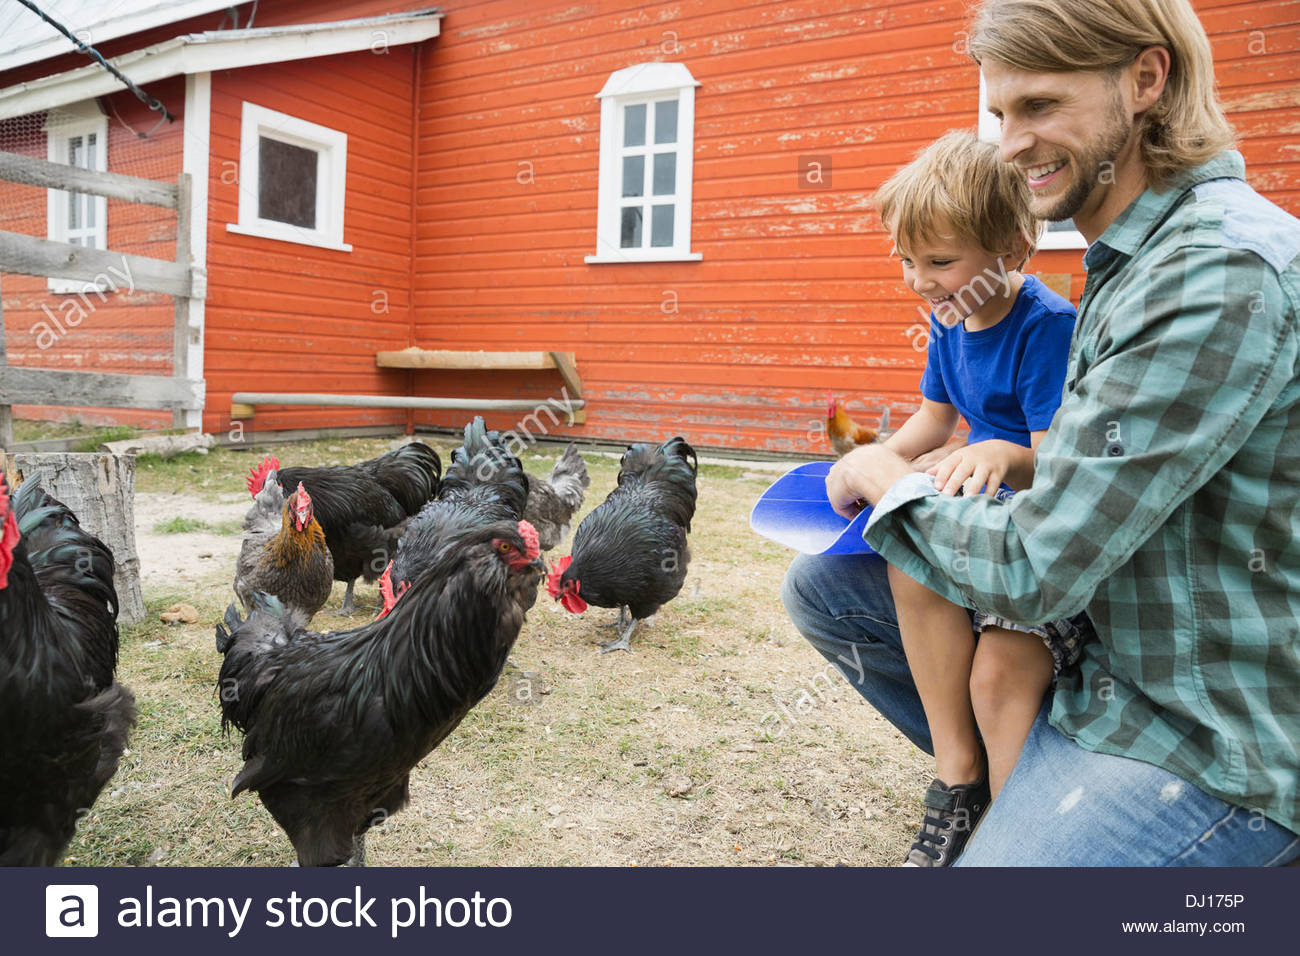 Father and son feeding chickens on farm - Stock Image